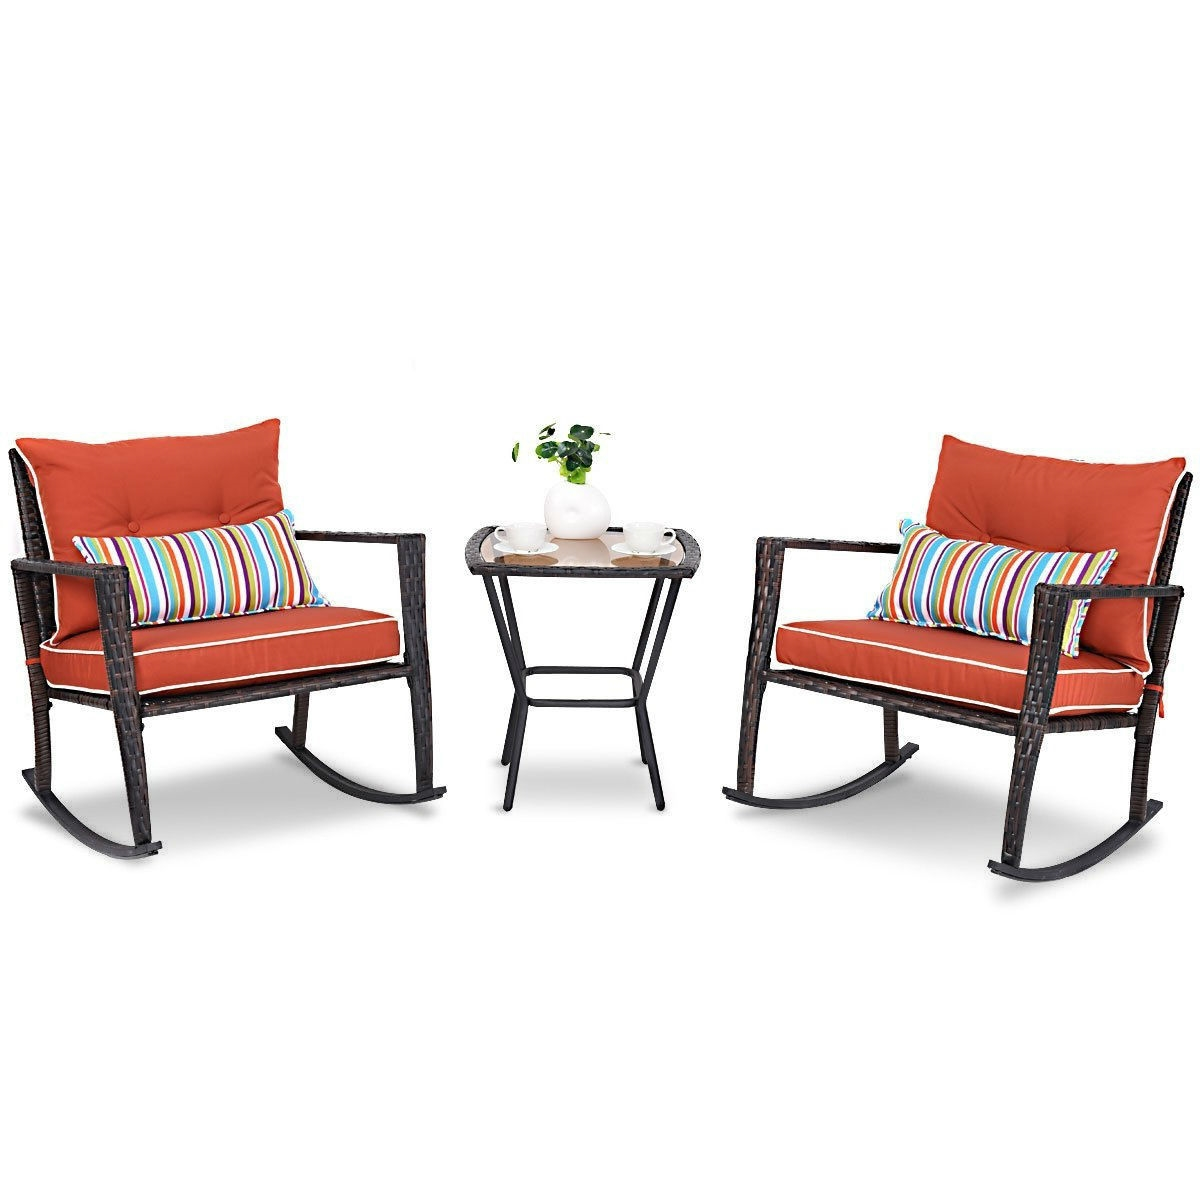 Red 3 Piece Patio Set Rattan Wicker Rocking Chairs With Coffee Table Fastfurnishings